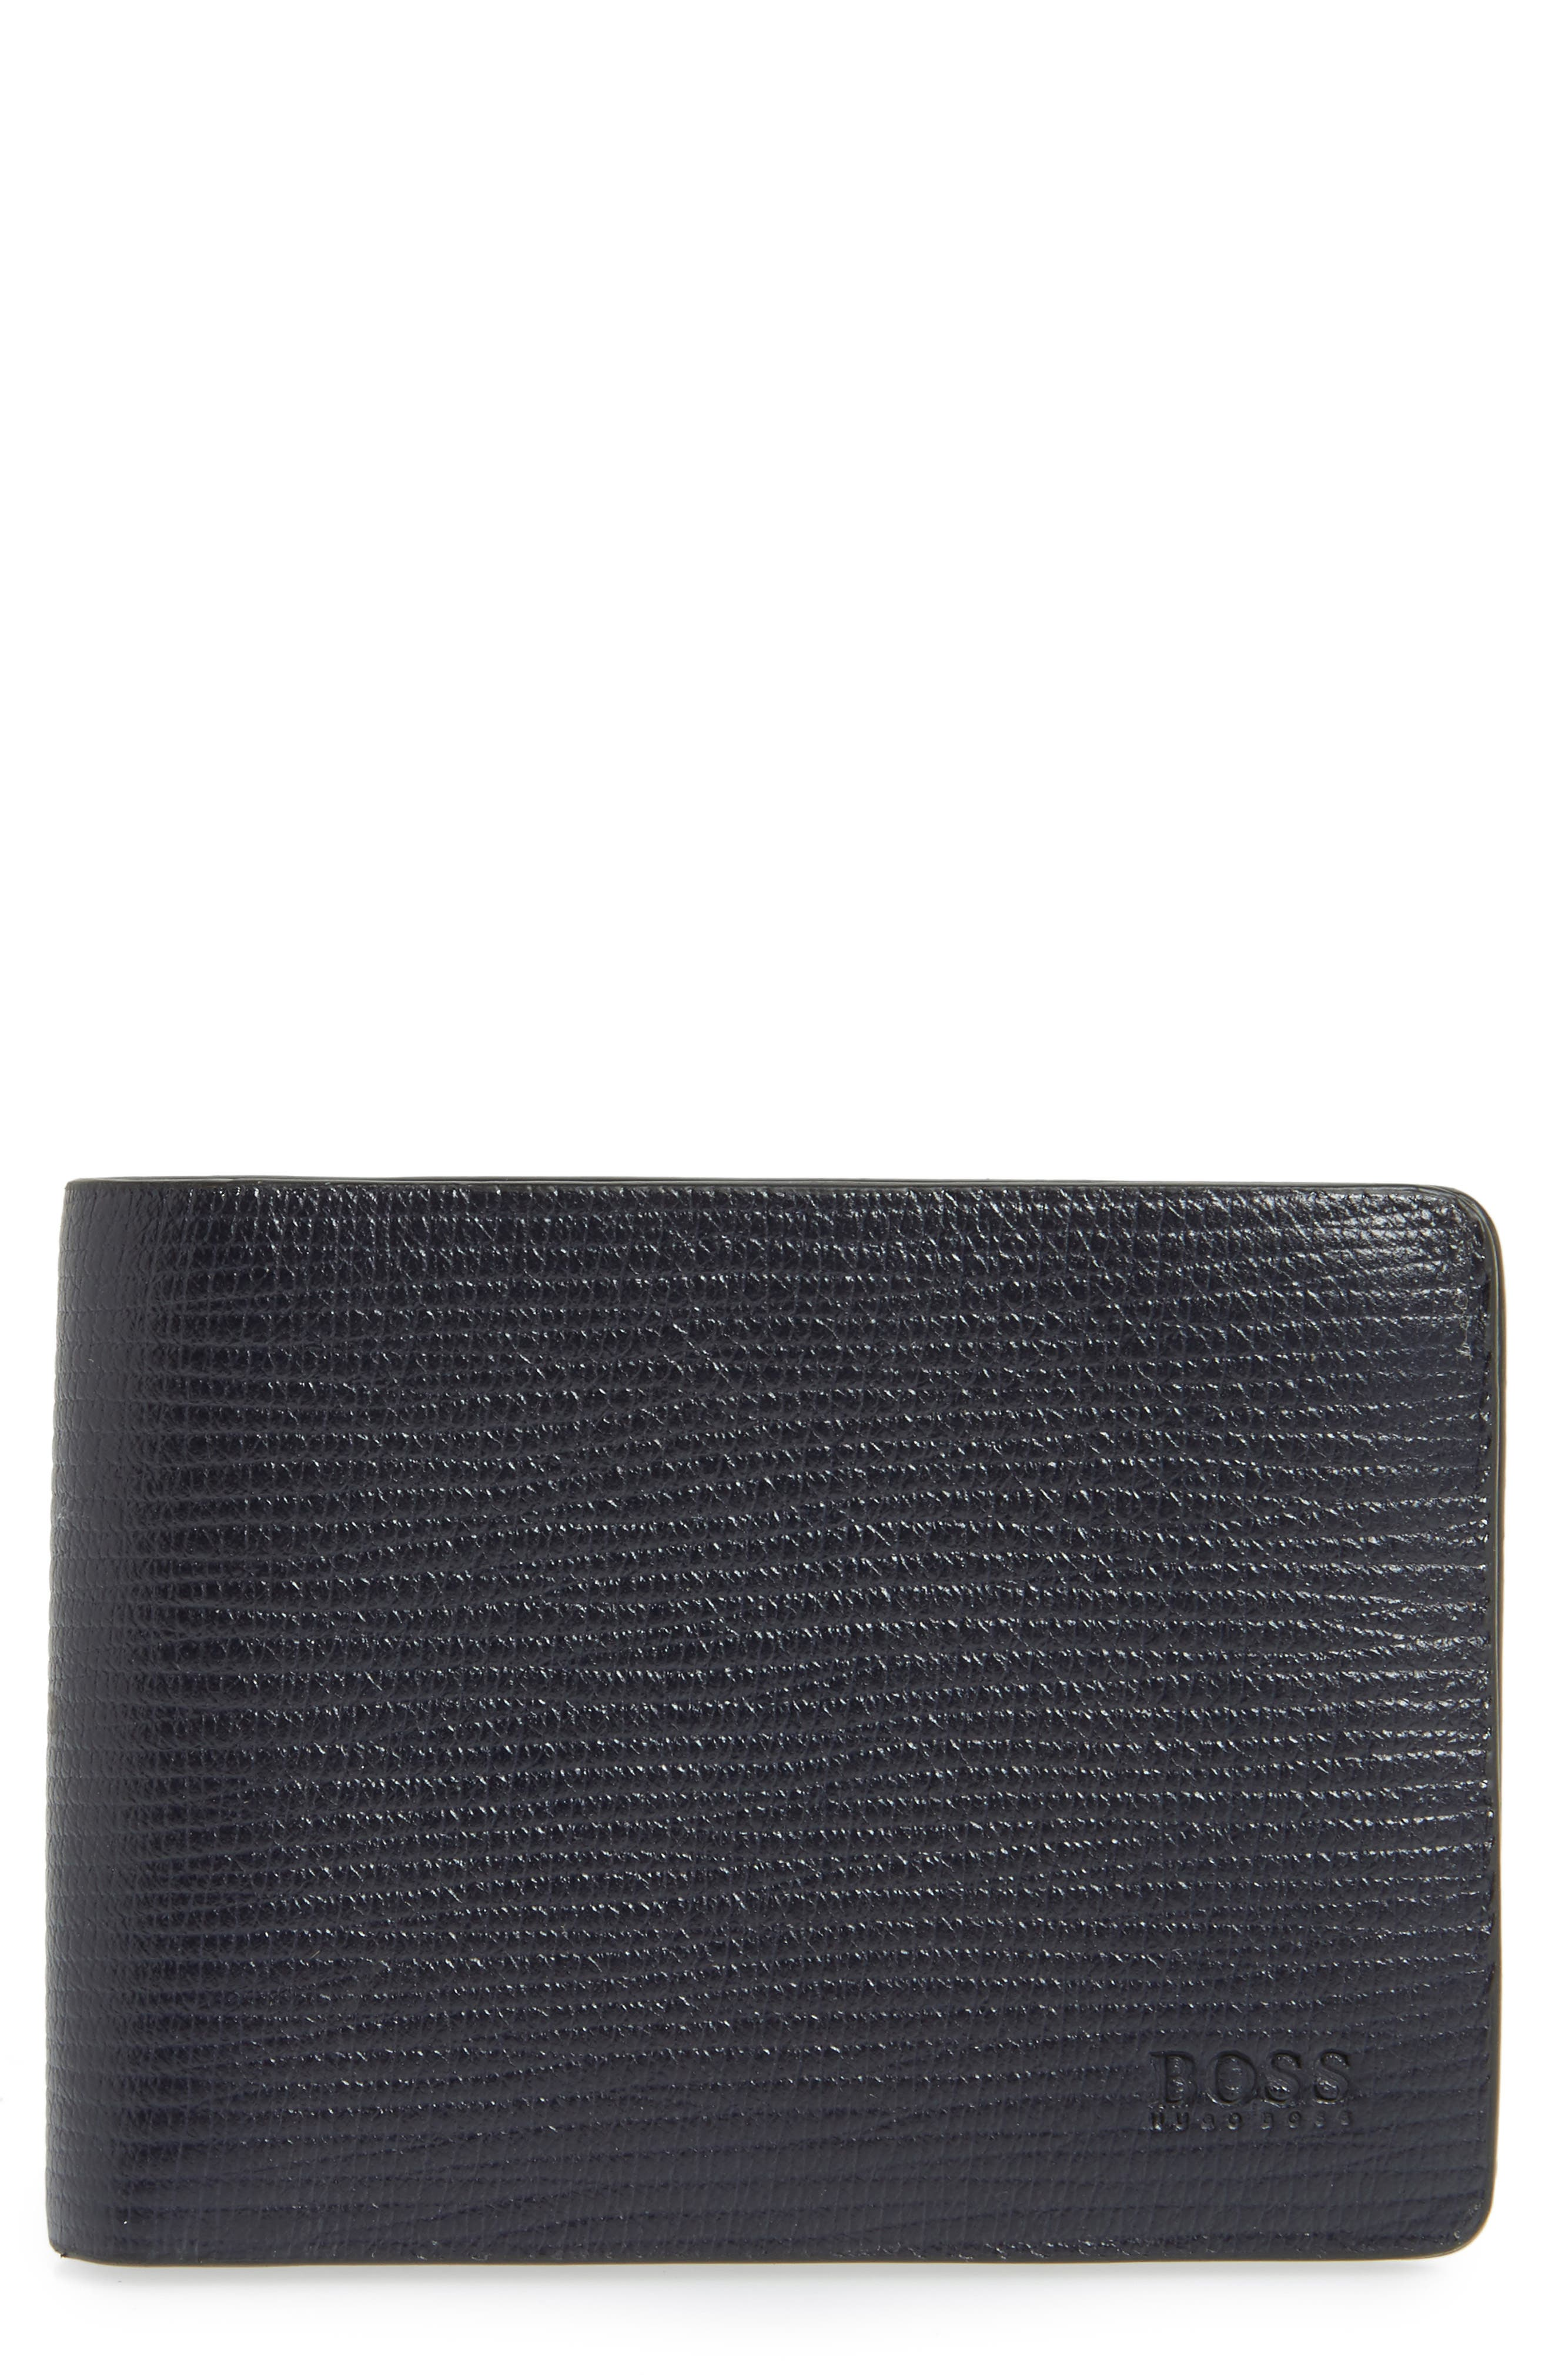 Timeless Leather Wallet,                         Main,                         color, Navy